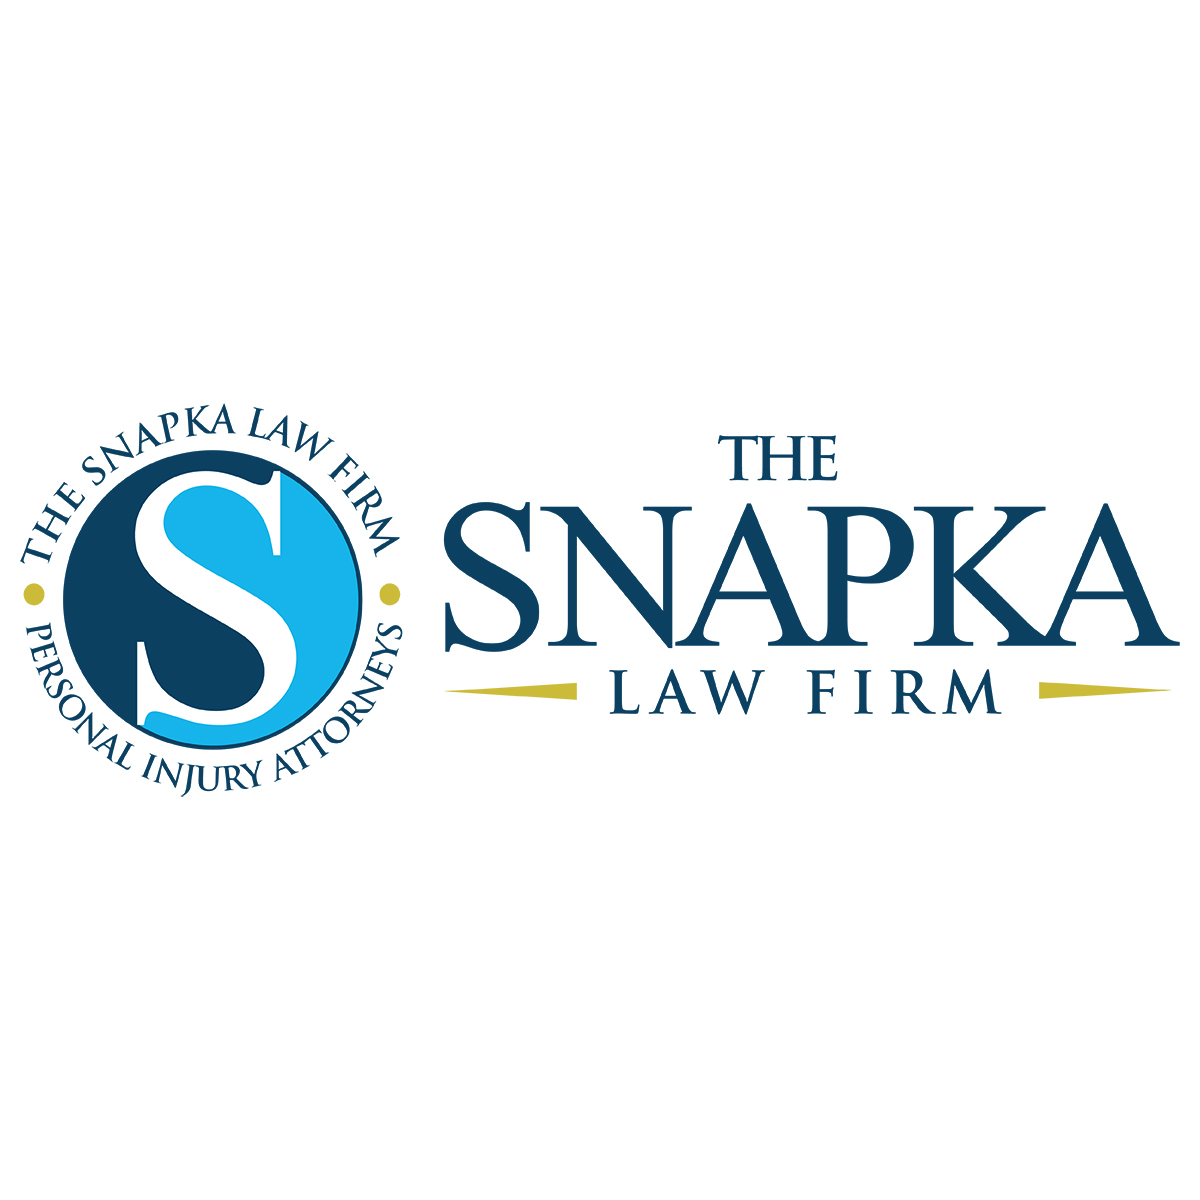 Corpus Christi Medical Malpractice Lawyers, The Snapka Law Firm, Injury Lawyers, Now Offer Services To Spanish Speakers